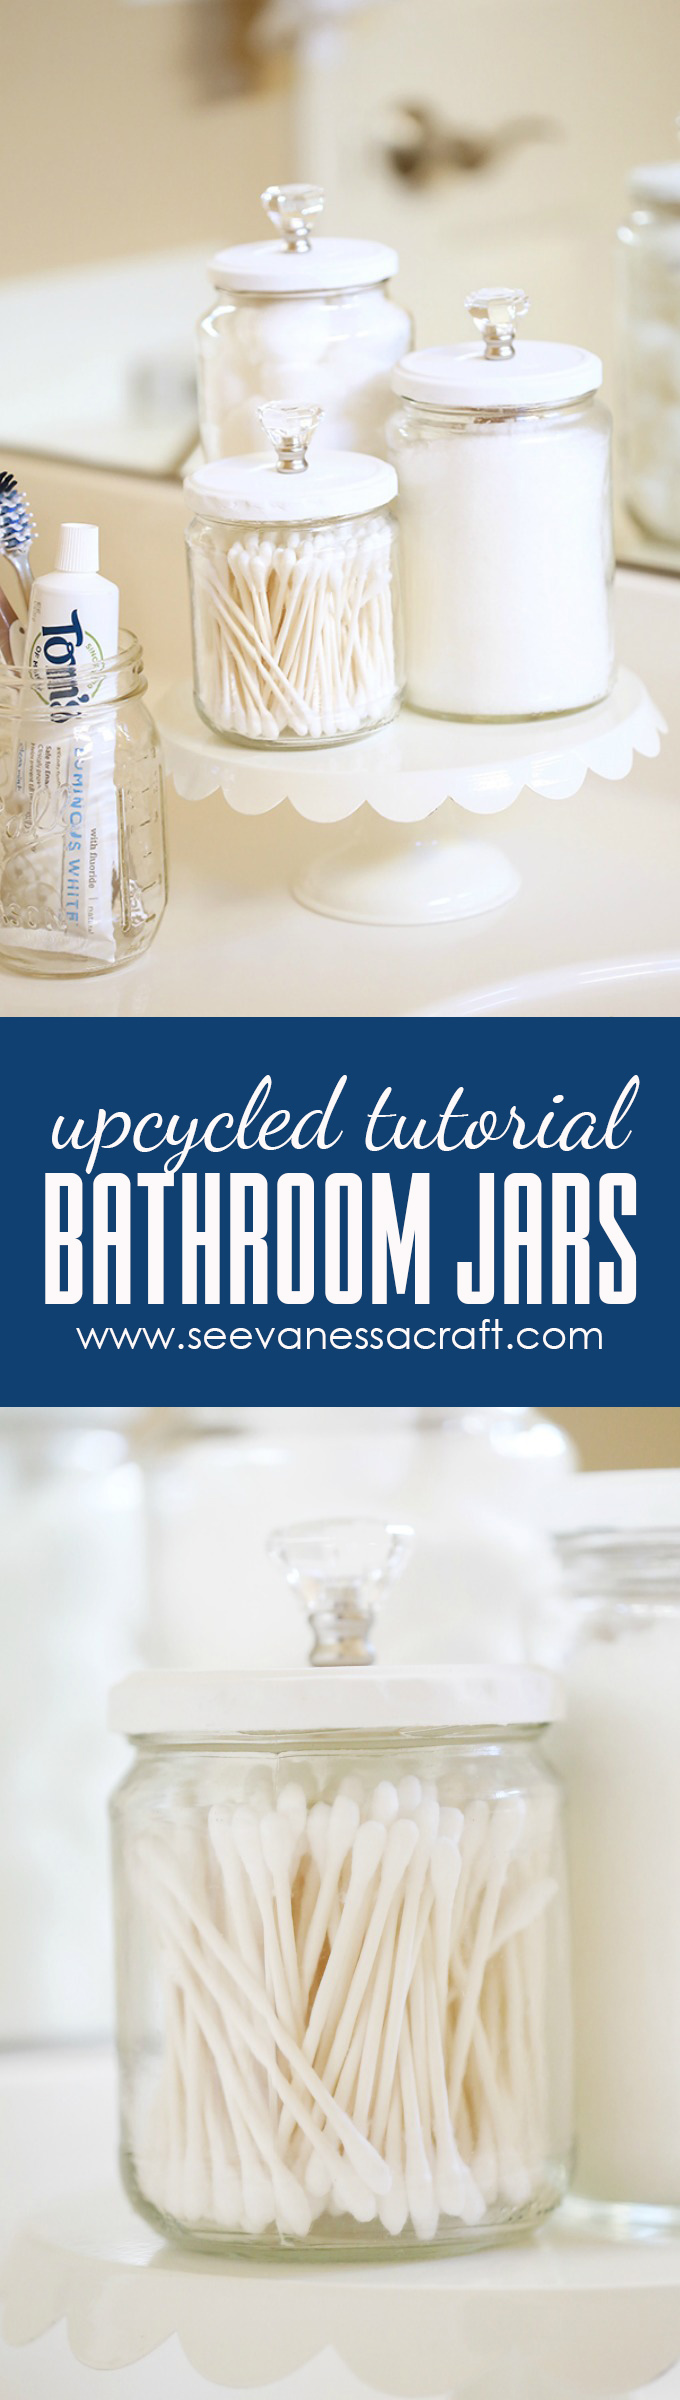 Upcycled Bathroom Jars Craft Tutorial